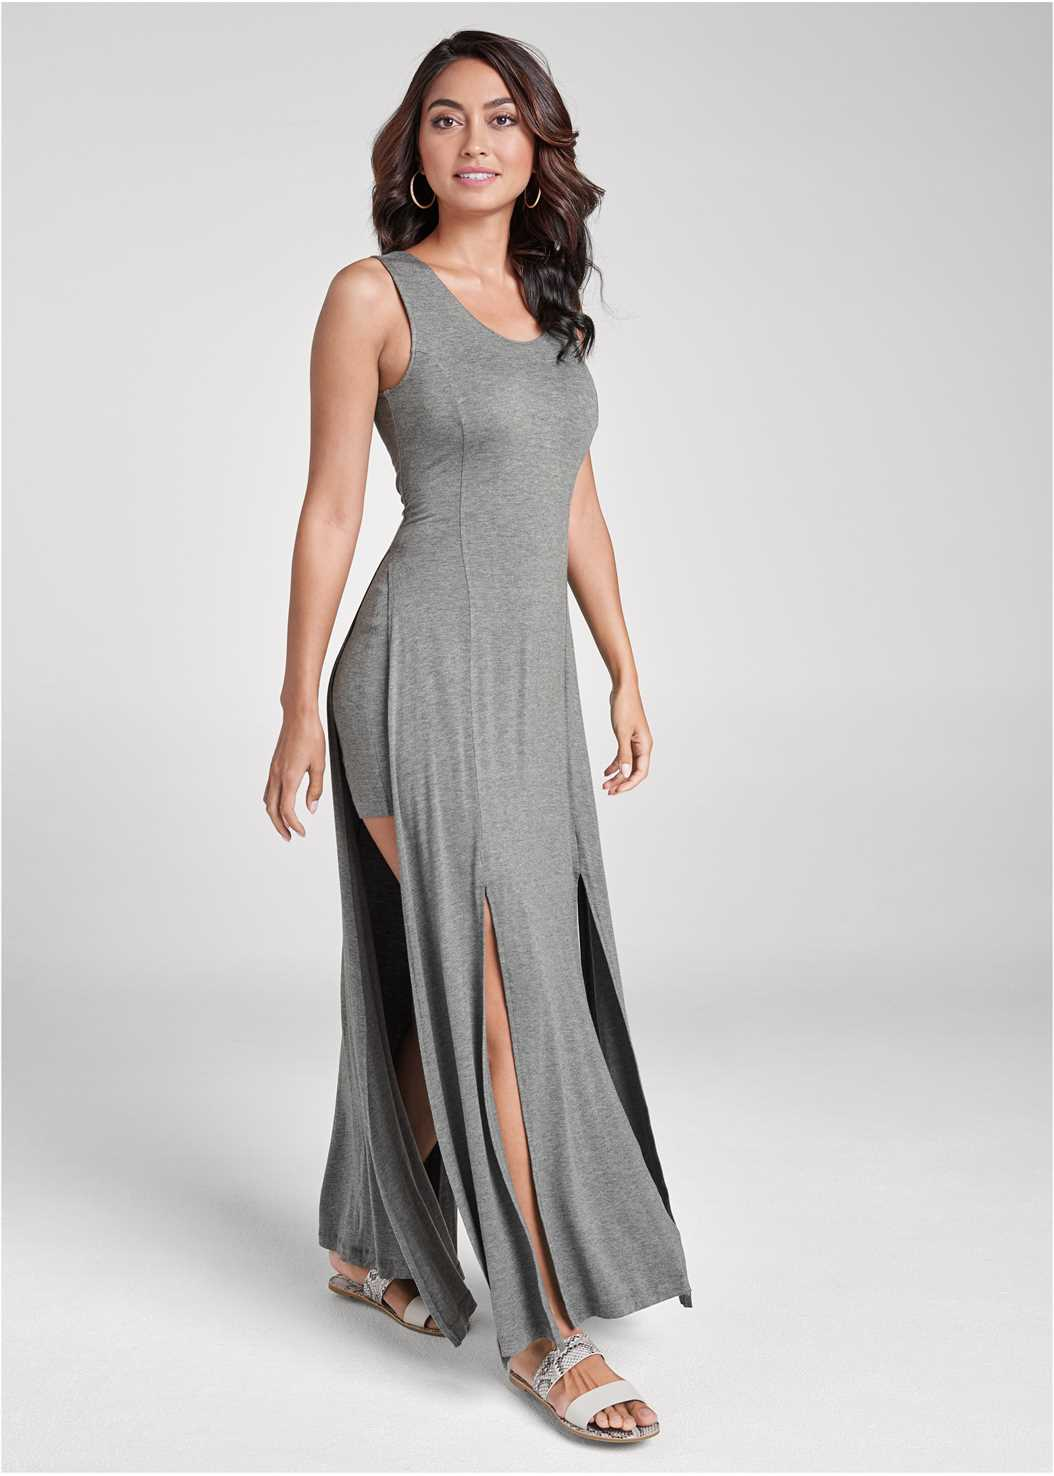 High Slit Casual Maxi Dress,Double Strap Printed Sandal